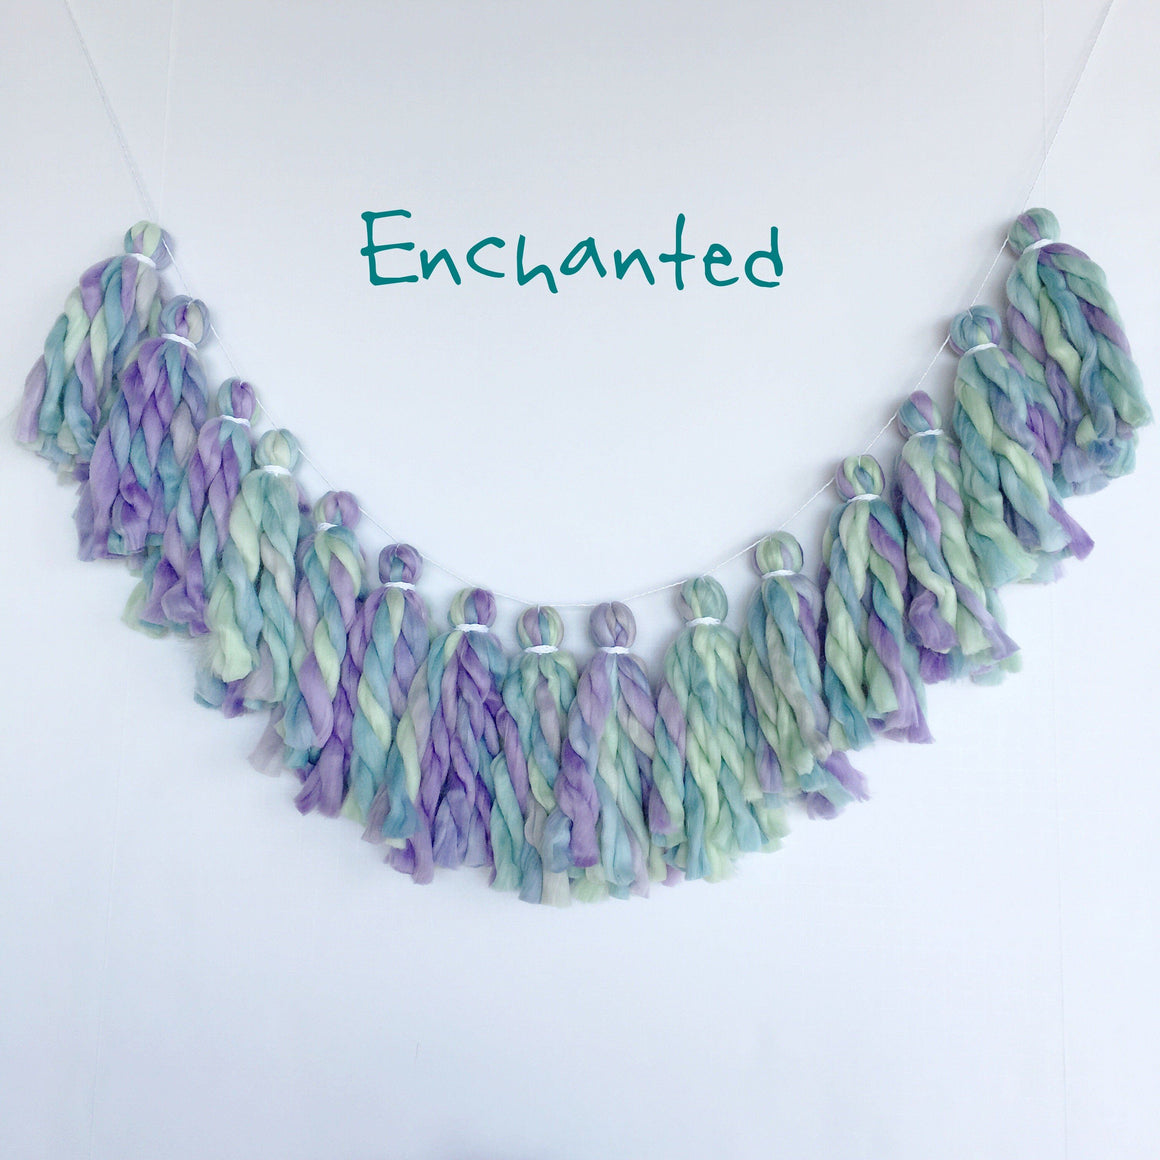 TASSEL GARLAND - YARN CHUNKY ENCHANTED